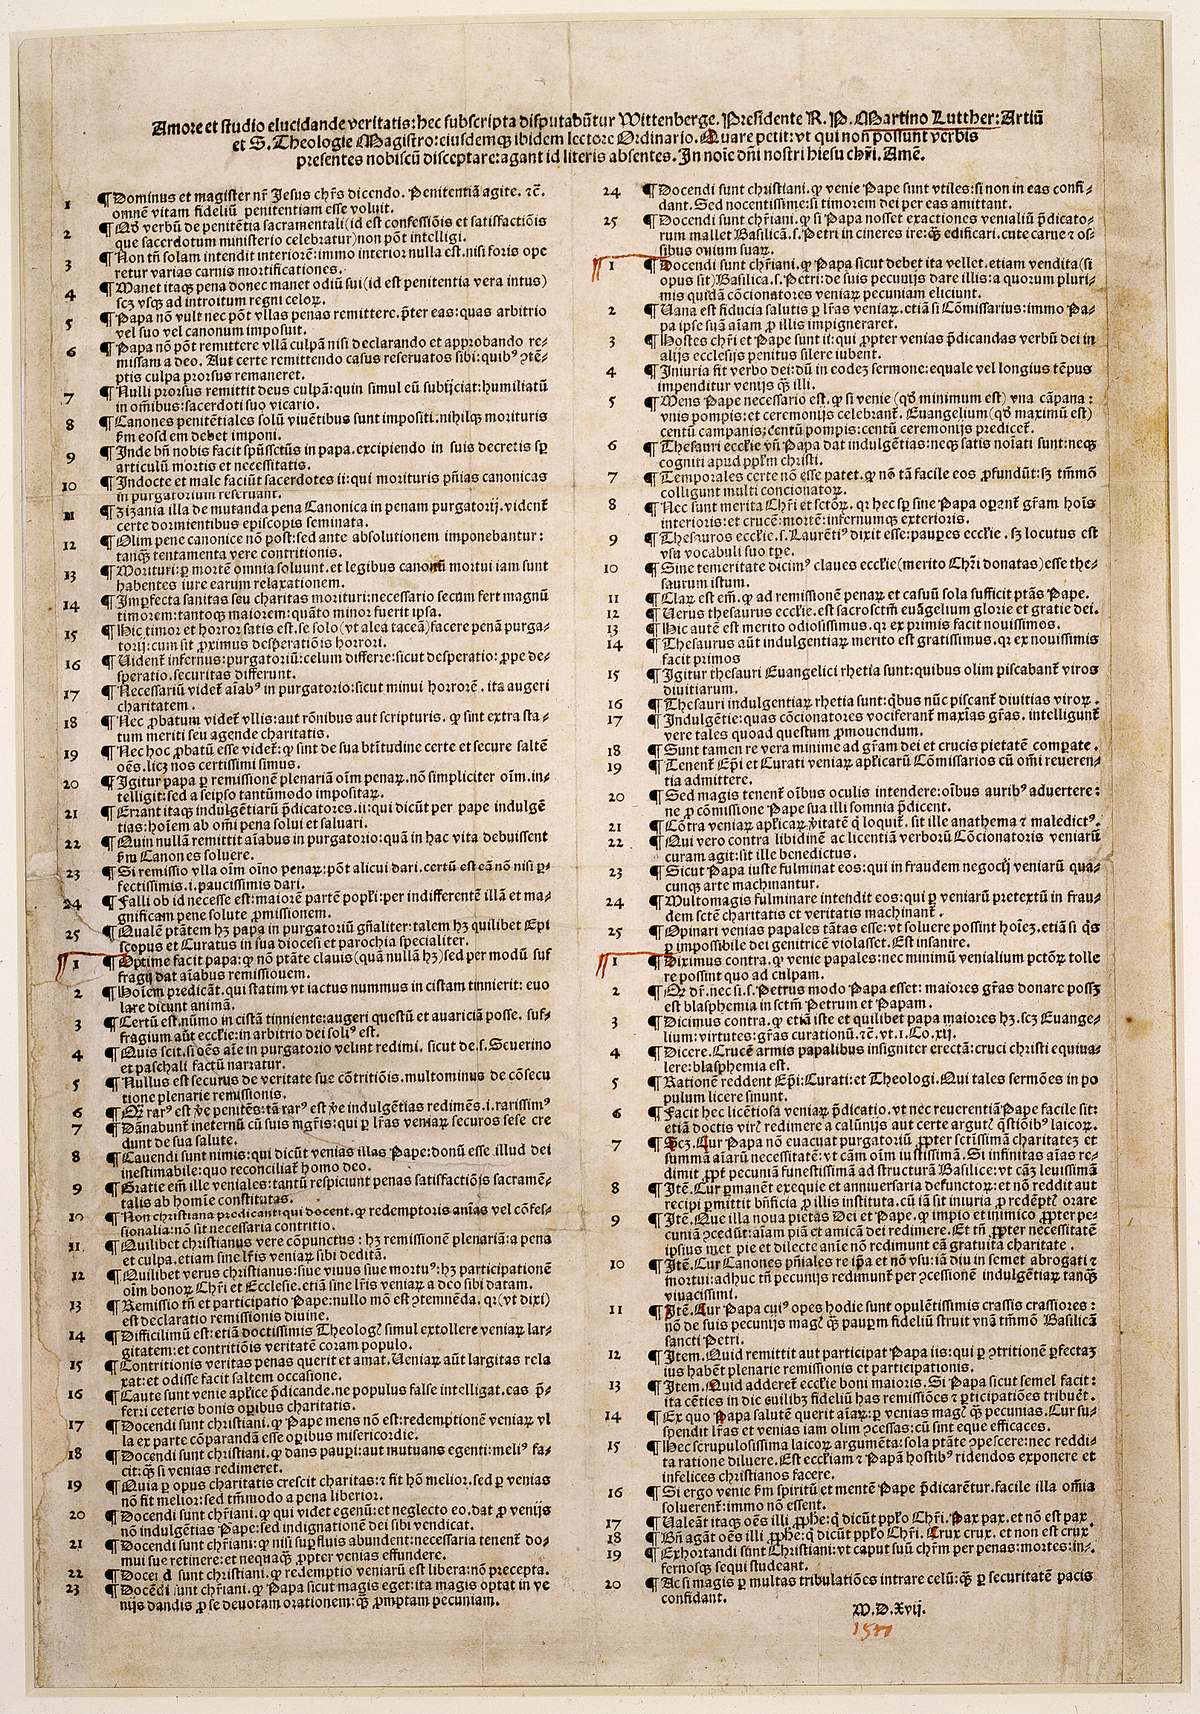 Martin Luther's 95 Theses in Latin and English